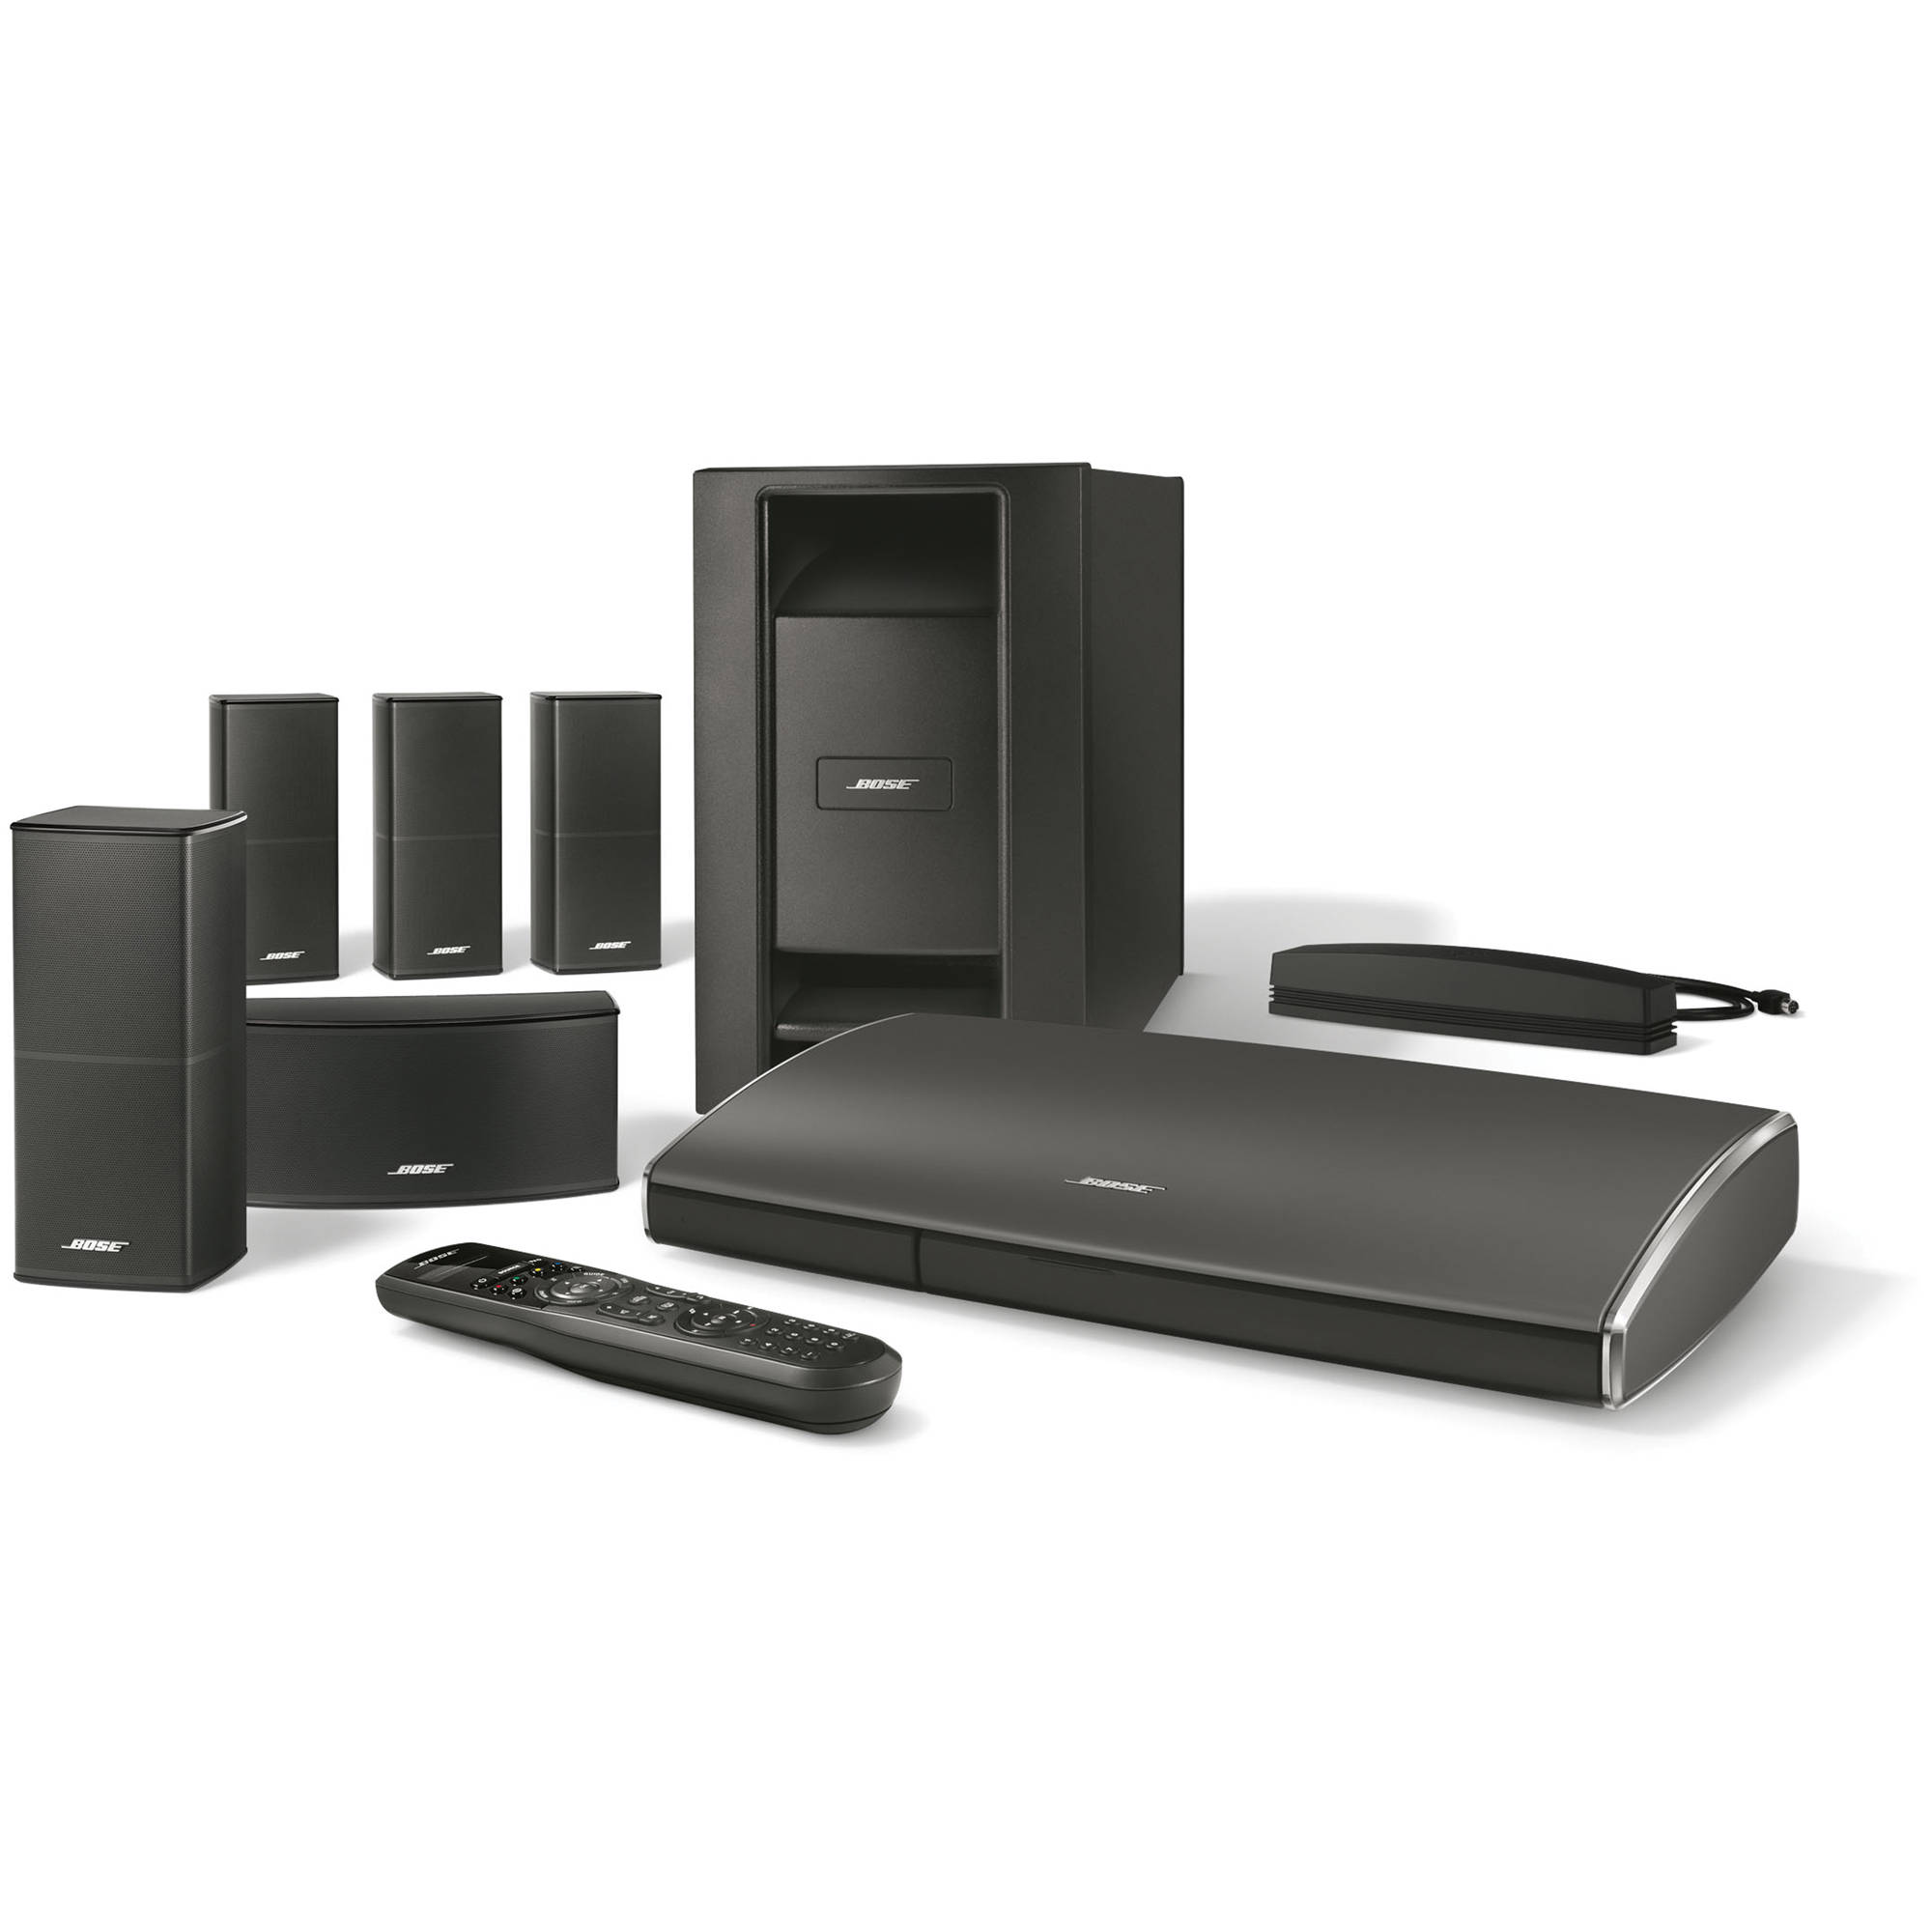 Bose Lifestyle 525 Series Iii Home Theater System 715592